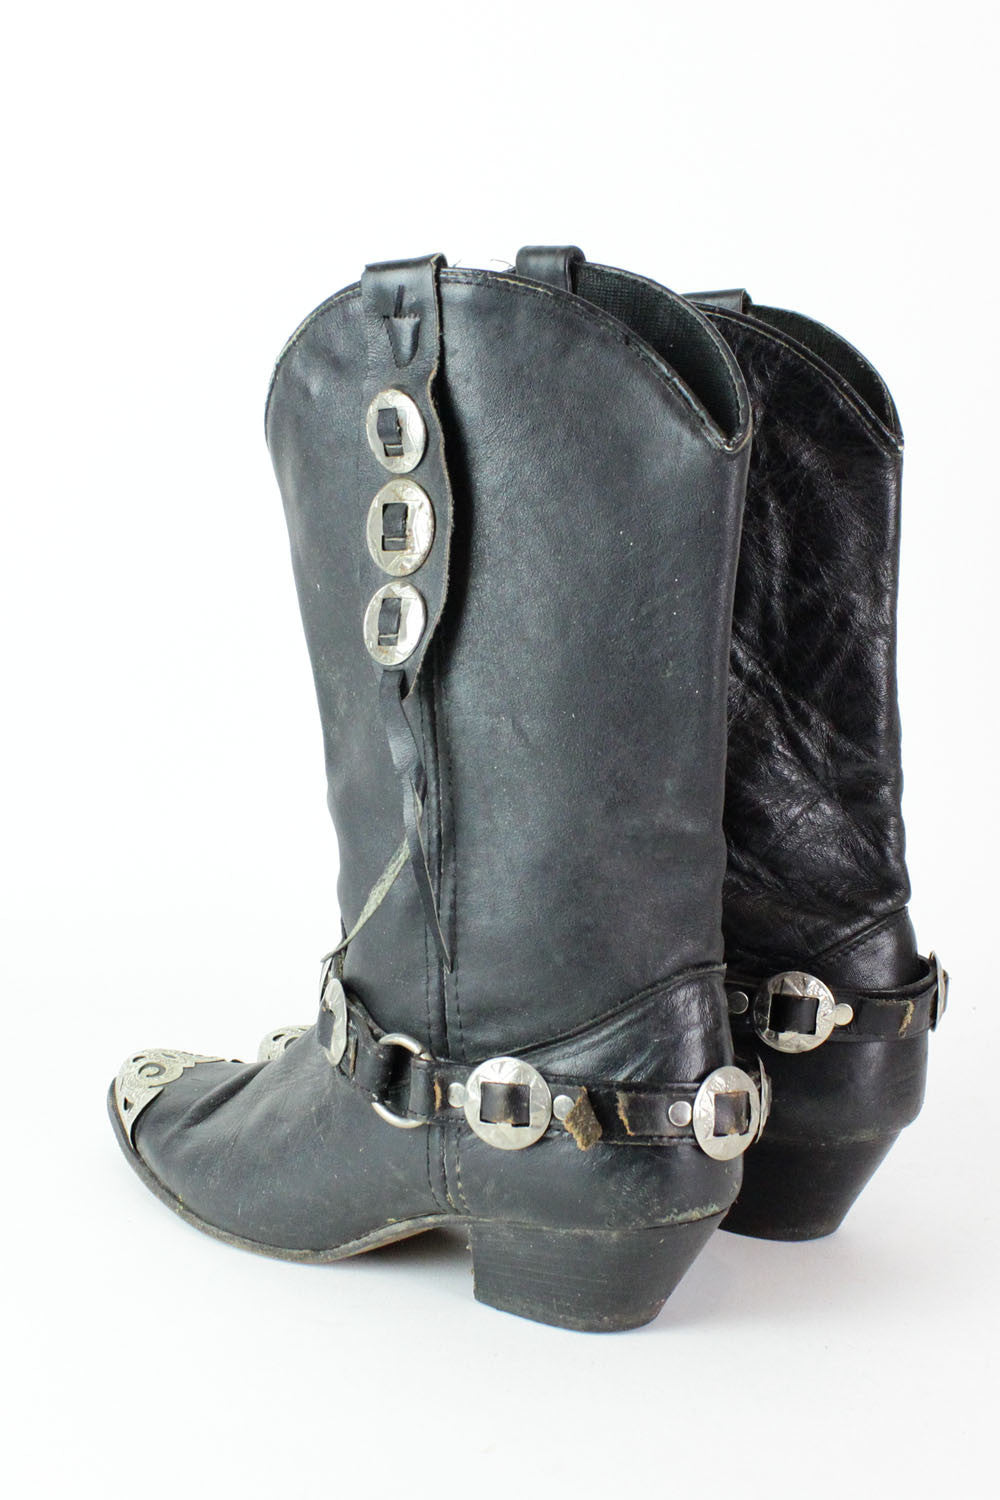 Concho Harness Boots 7